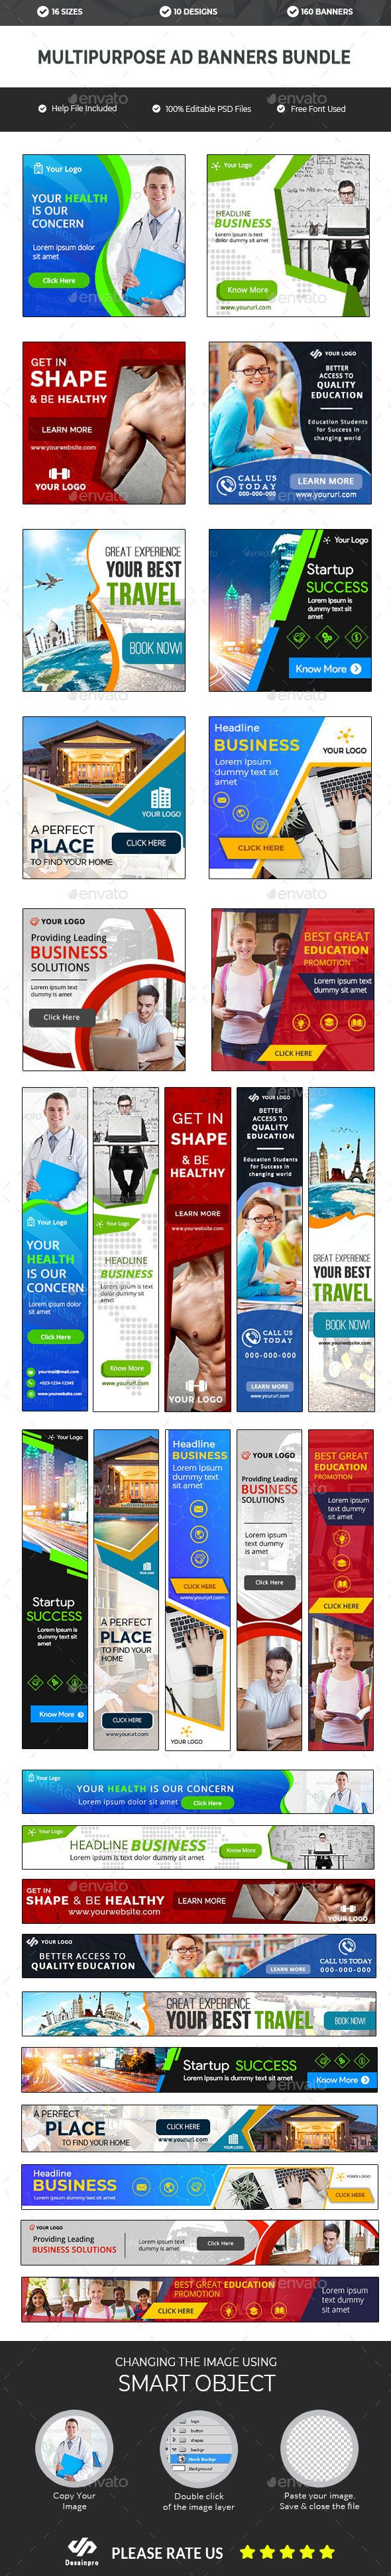 Multipurpose Banners Bundle 10 Sets 160 Banners Ar Multipurpose Banner Banner Adwords Banner